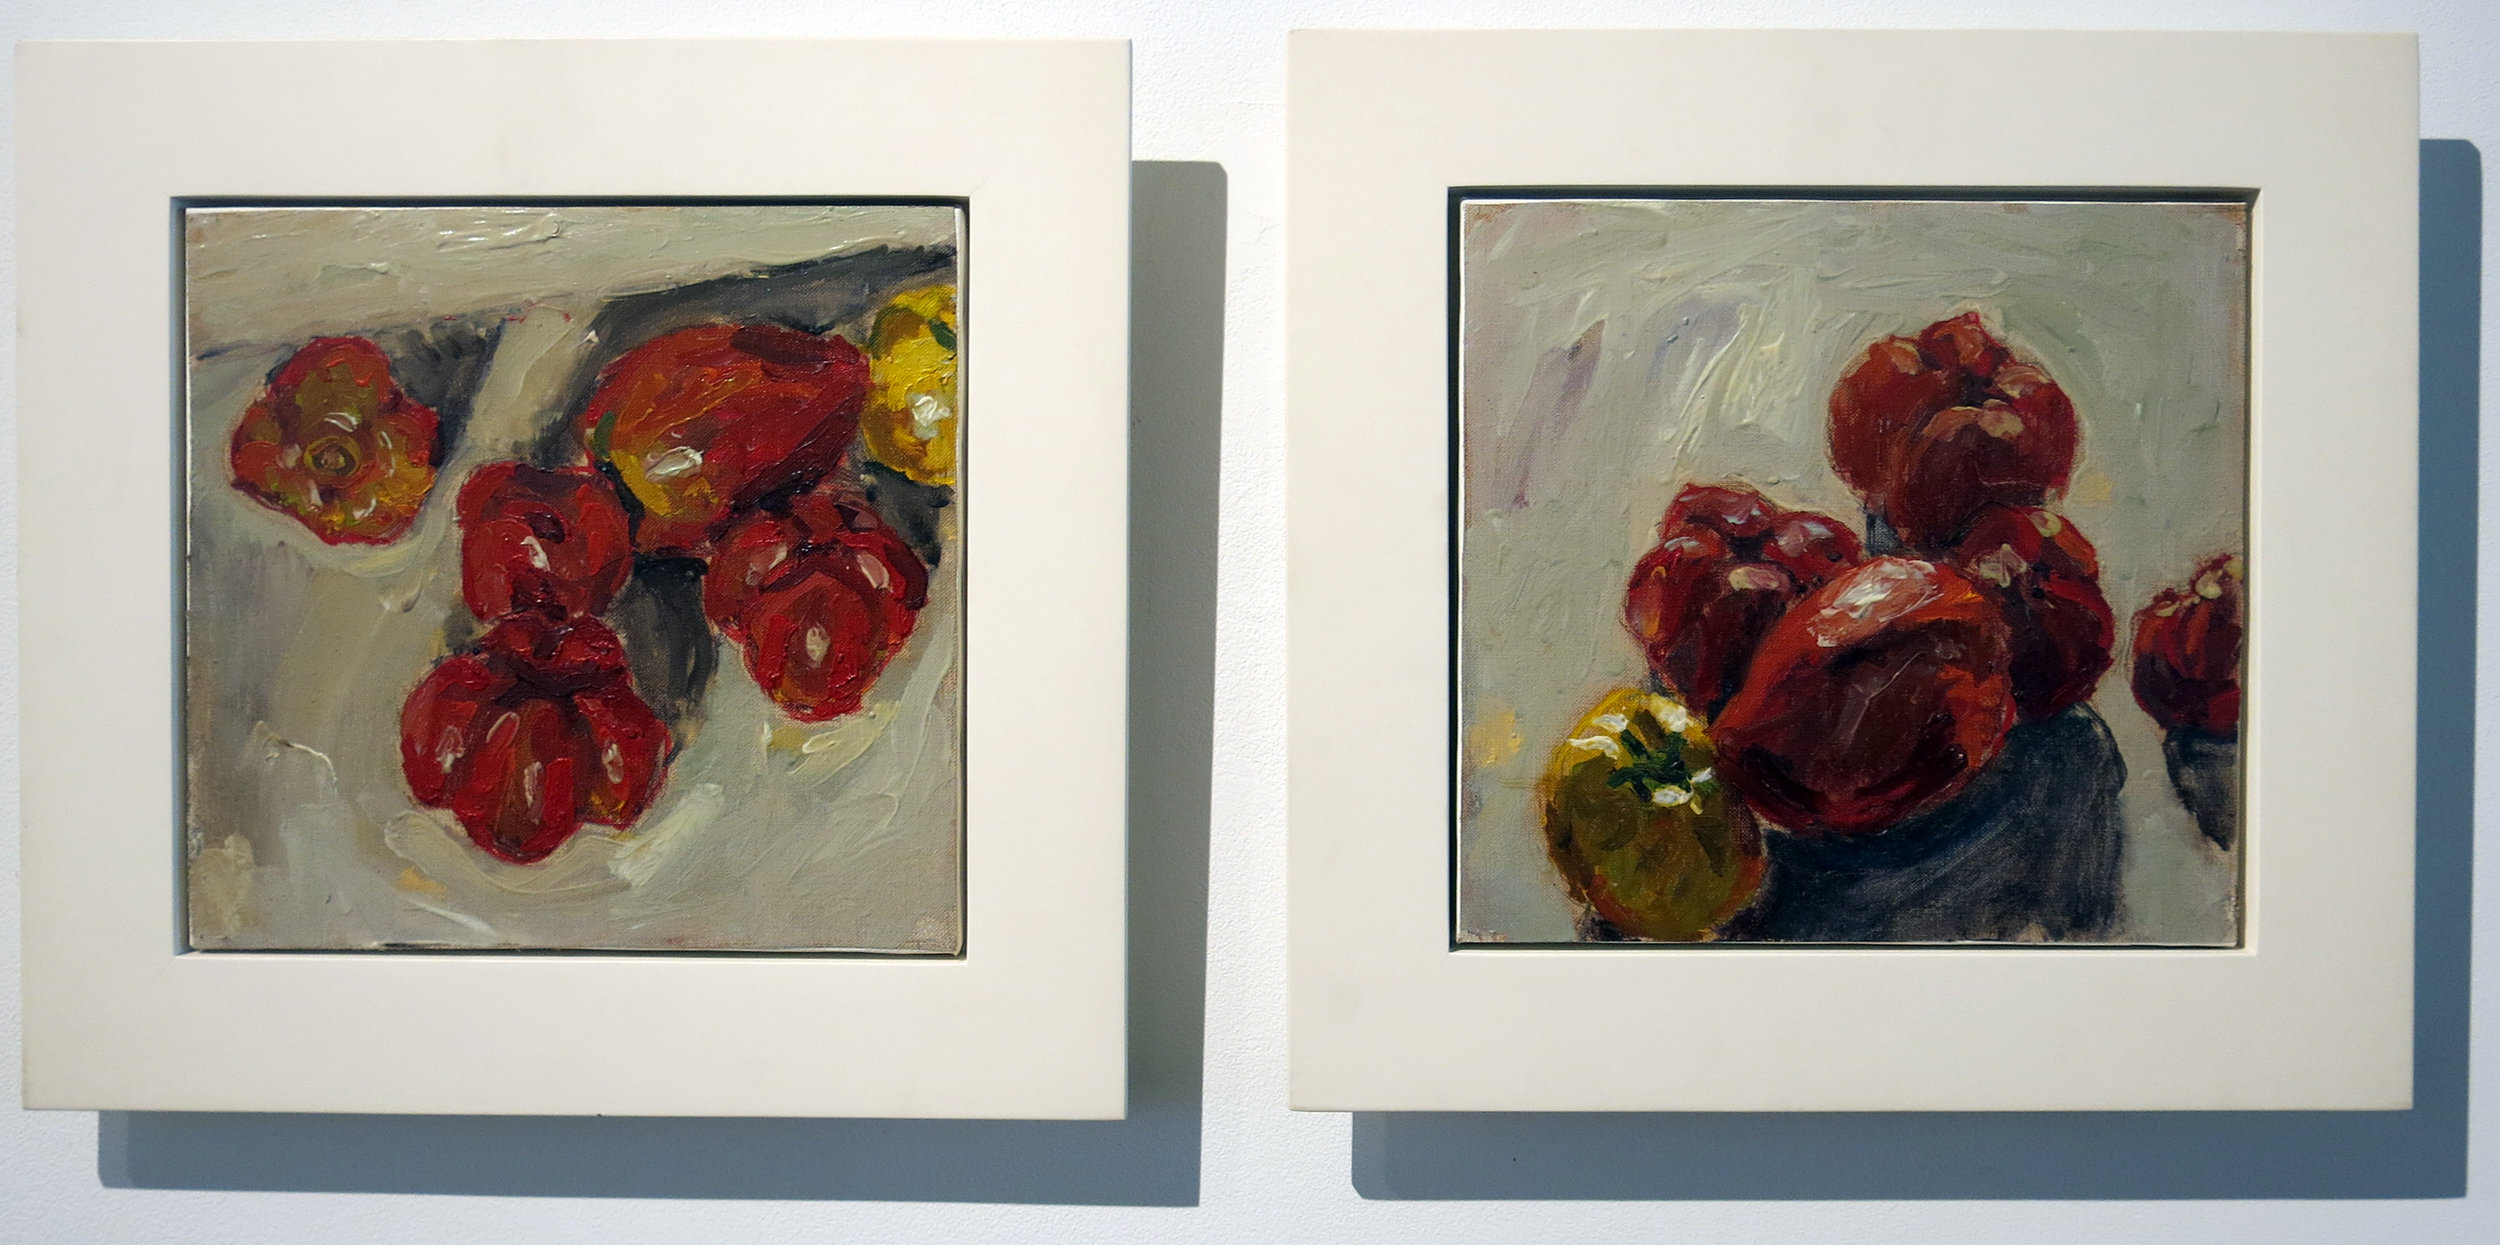 Peter Schmersal,  Coeur de Boeuf,  1991, Oil on canvas, two parts, 10.5h x 11w in; 10.5h x 11w in.